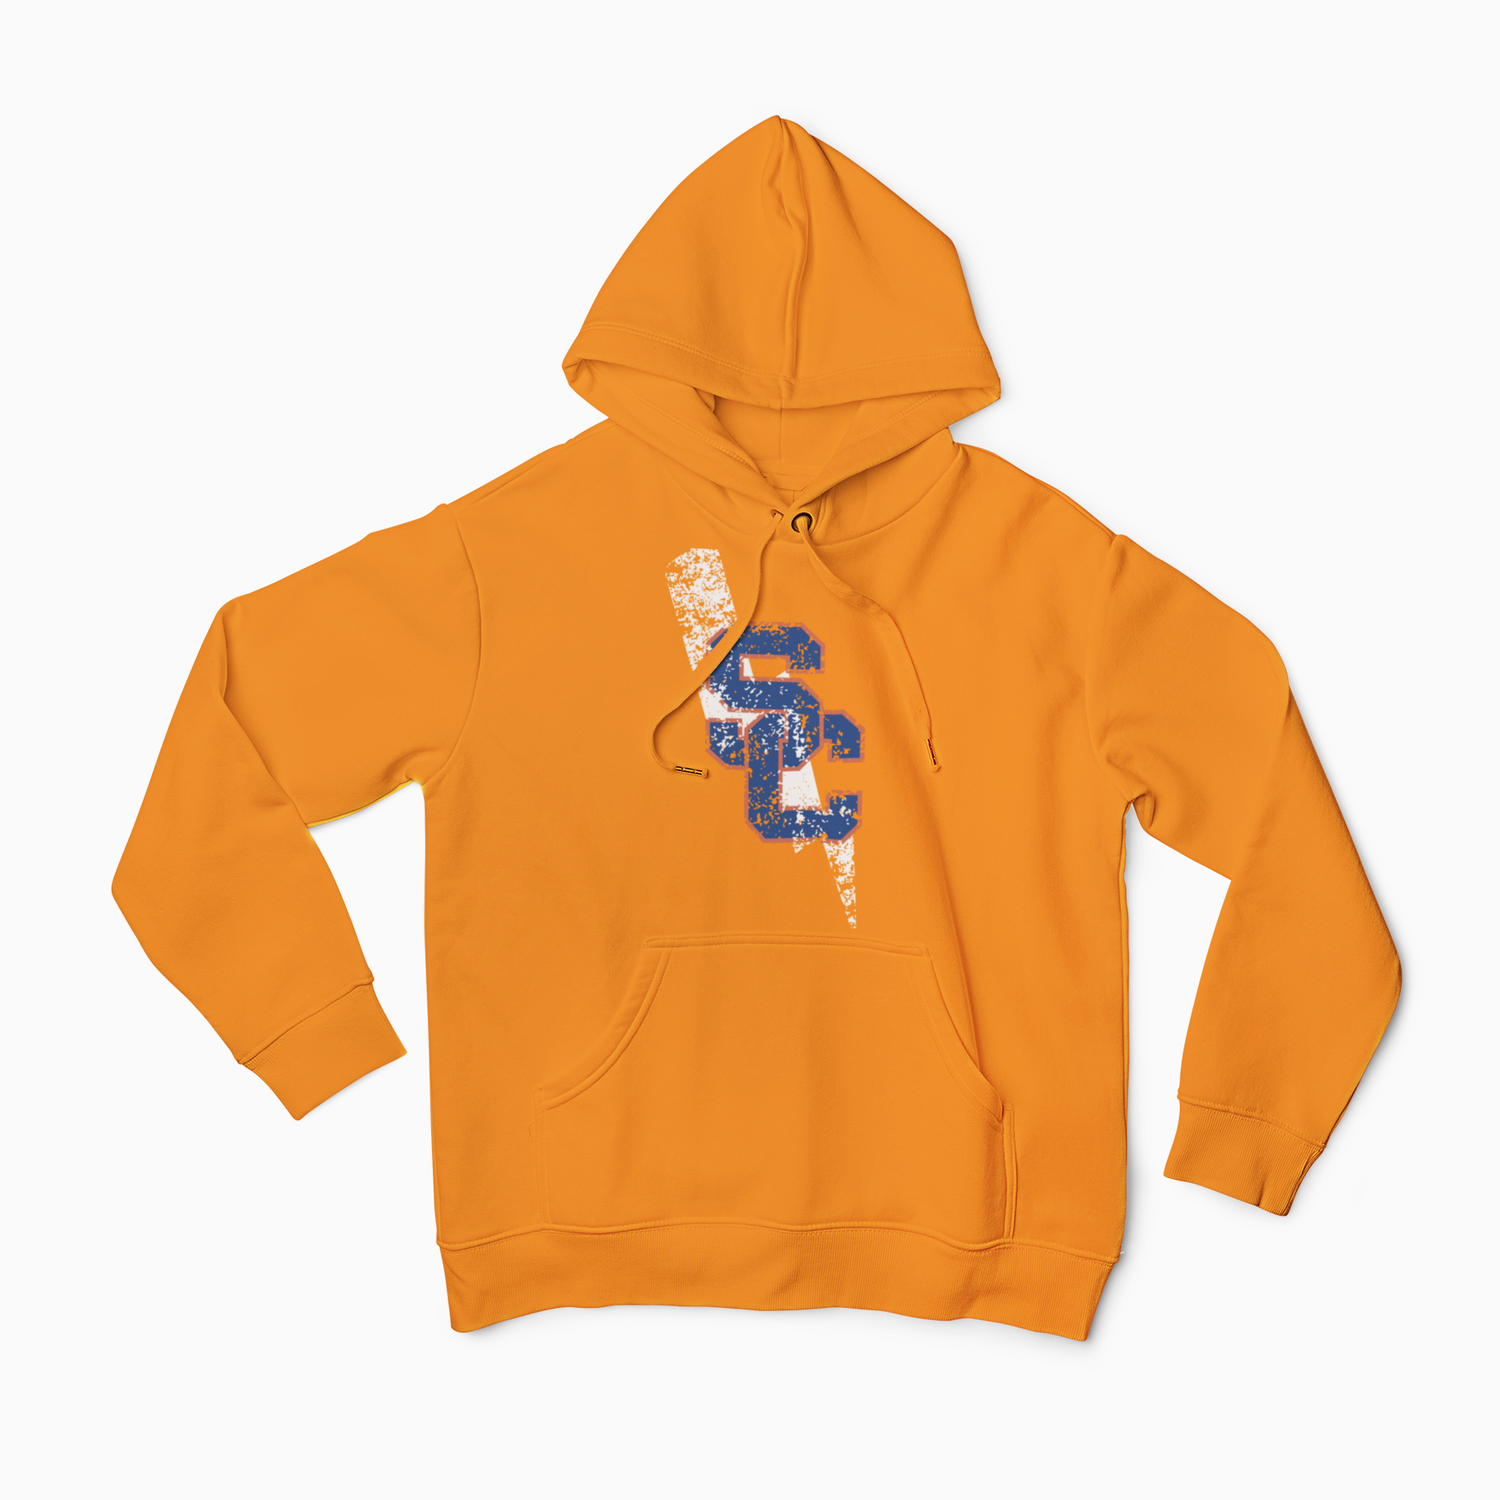 Image of Southaven Chargers Hoodie - (SC with Bolt)